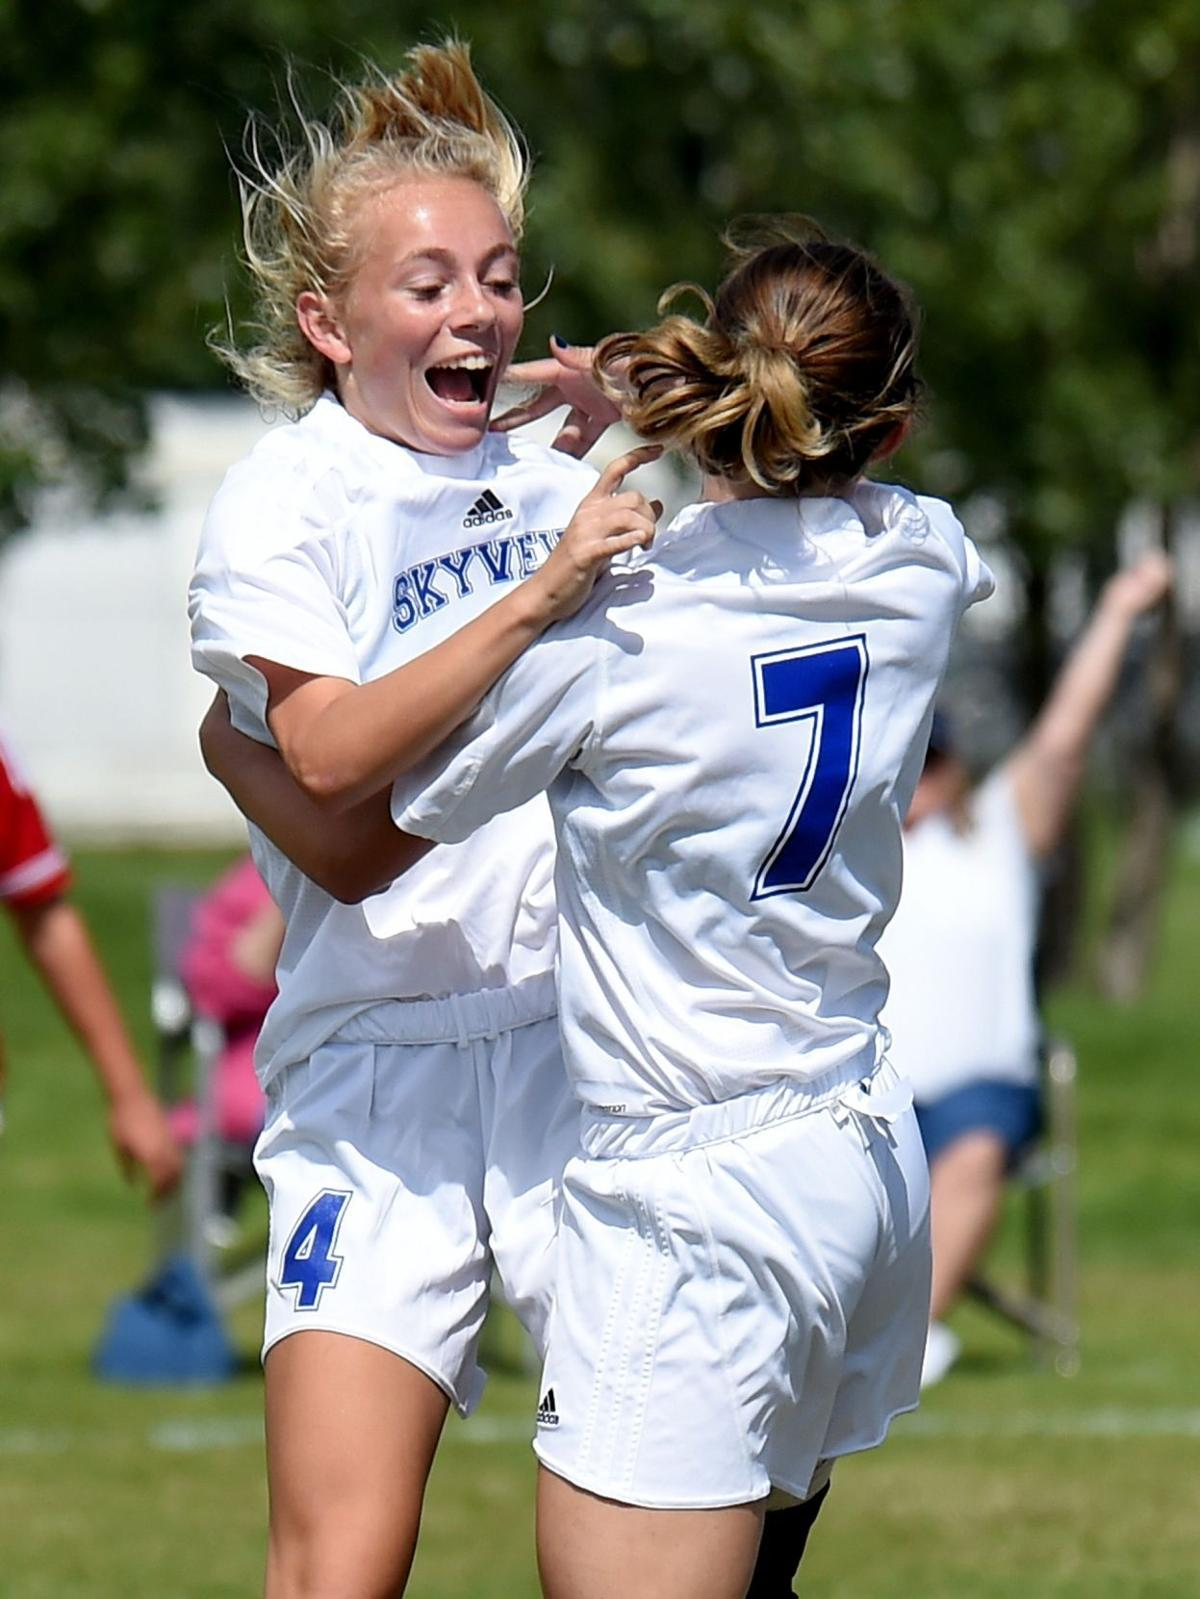 Bekah Fitzgerald and Nicole Guenthner celebrate